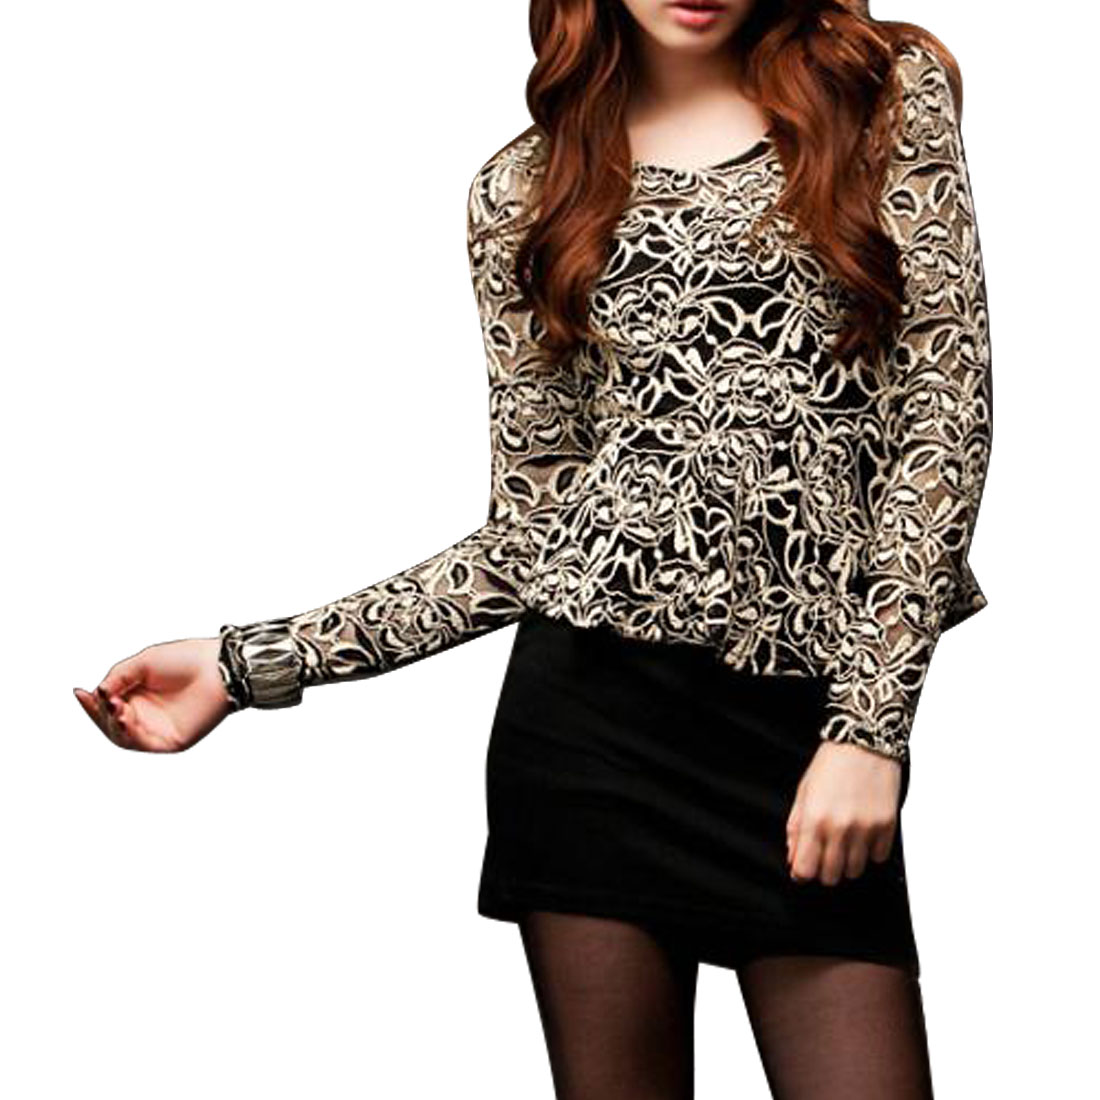 XS Woman White Black U Neck Long Sleeve Flower Lace Split Mini Dress